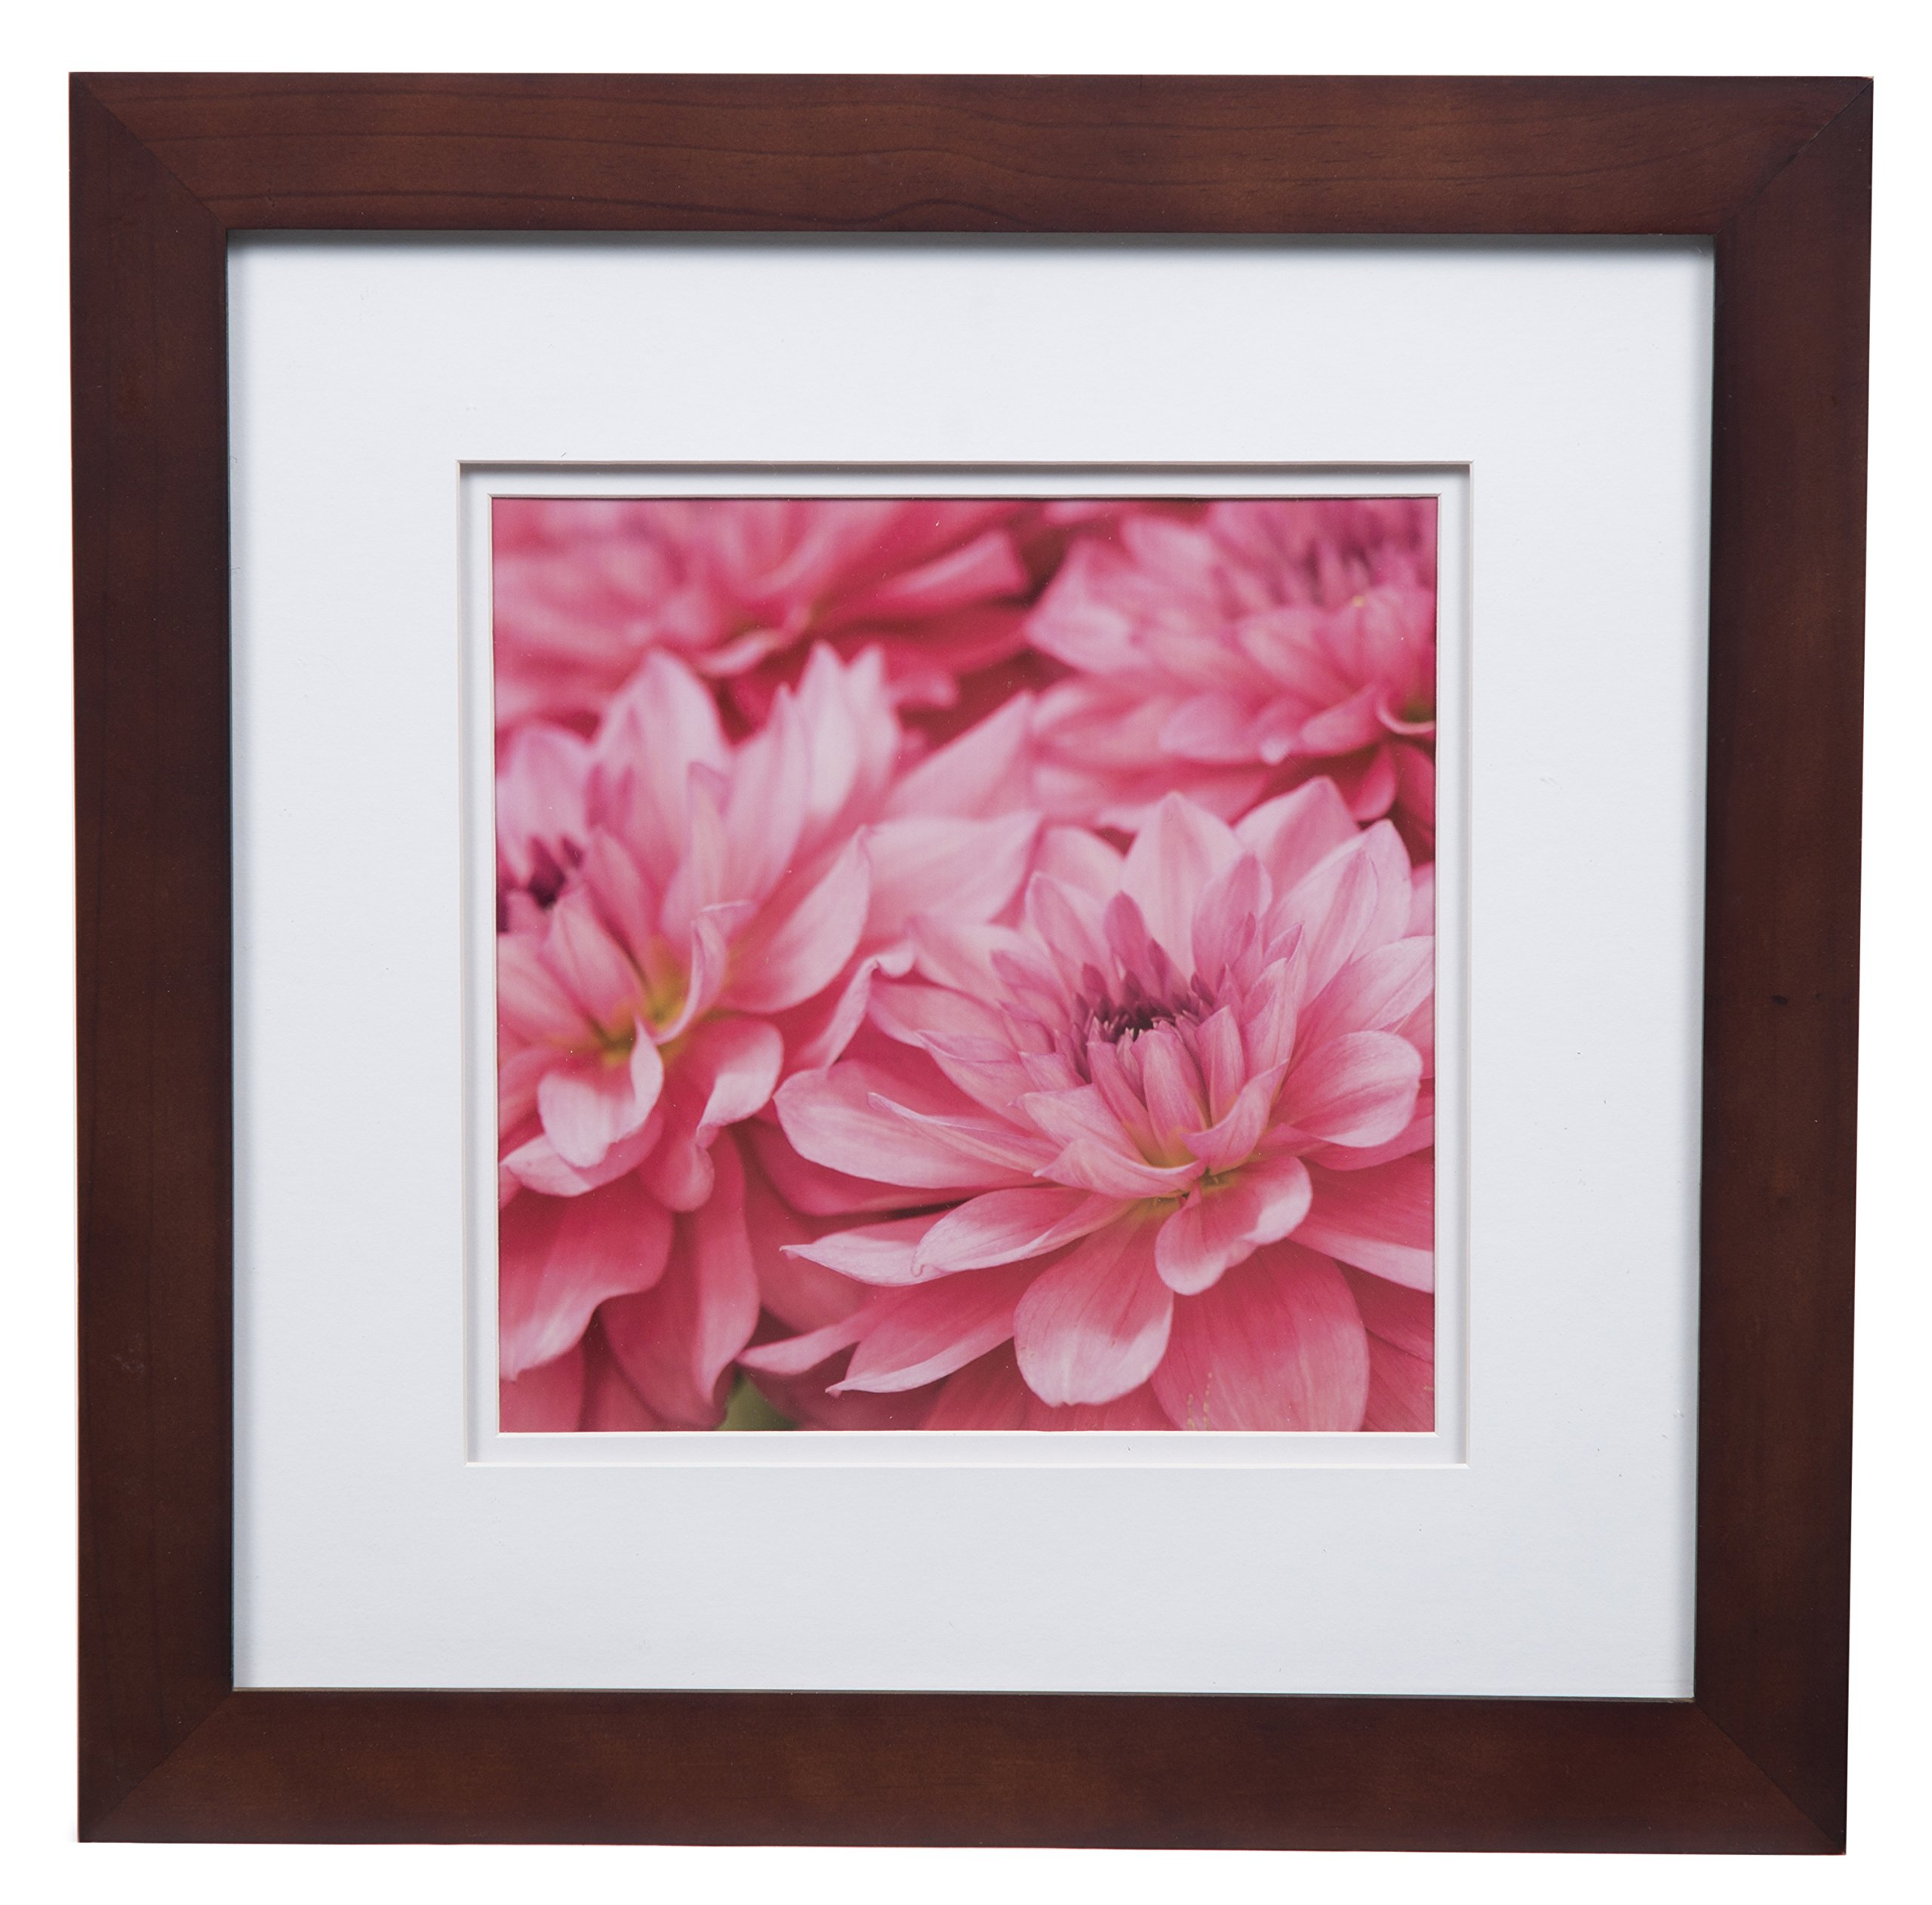 Gallery Solutions Photo 12x12 Flat Walnut Wall Frame with Double White Mat For 8x8 Picture, 12'' x 12'', by Gallery Solutions